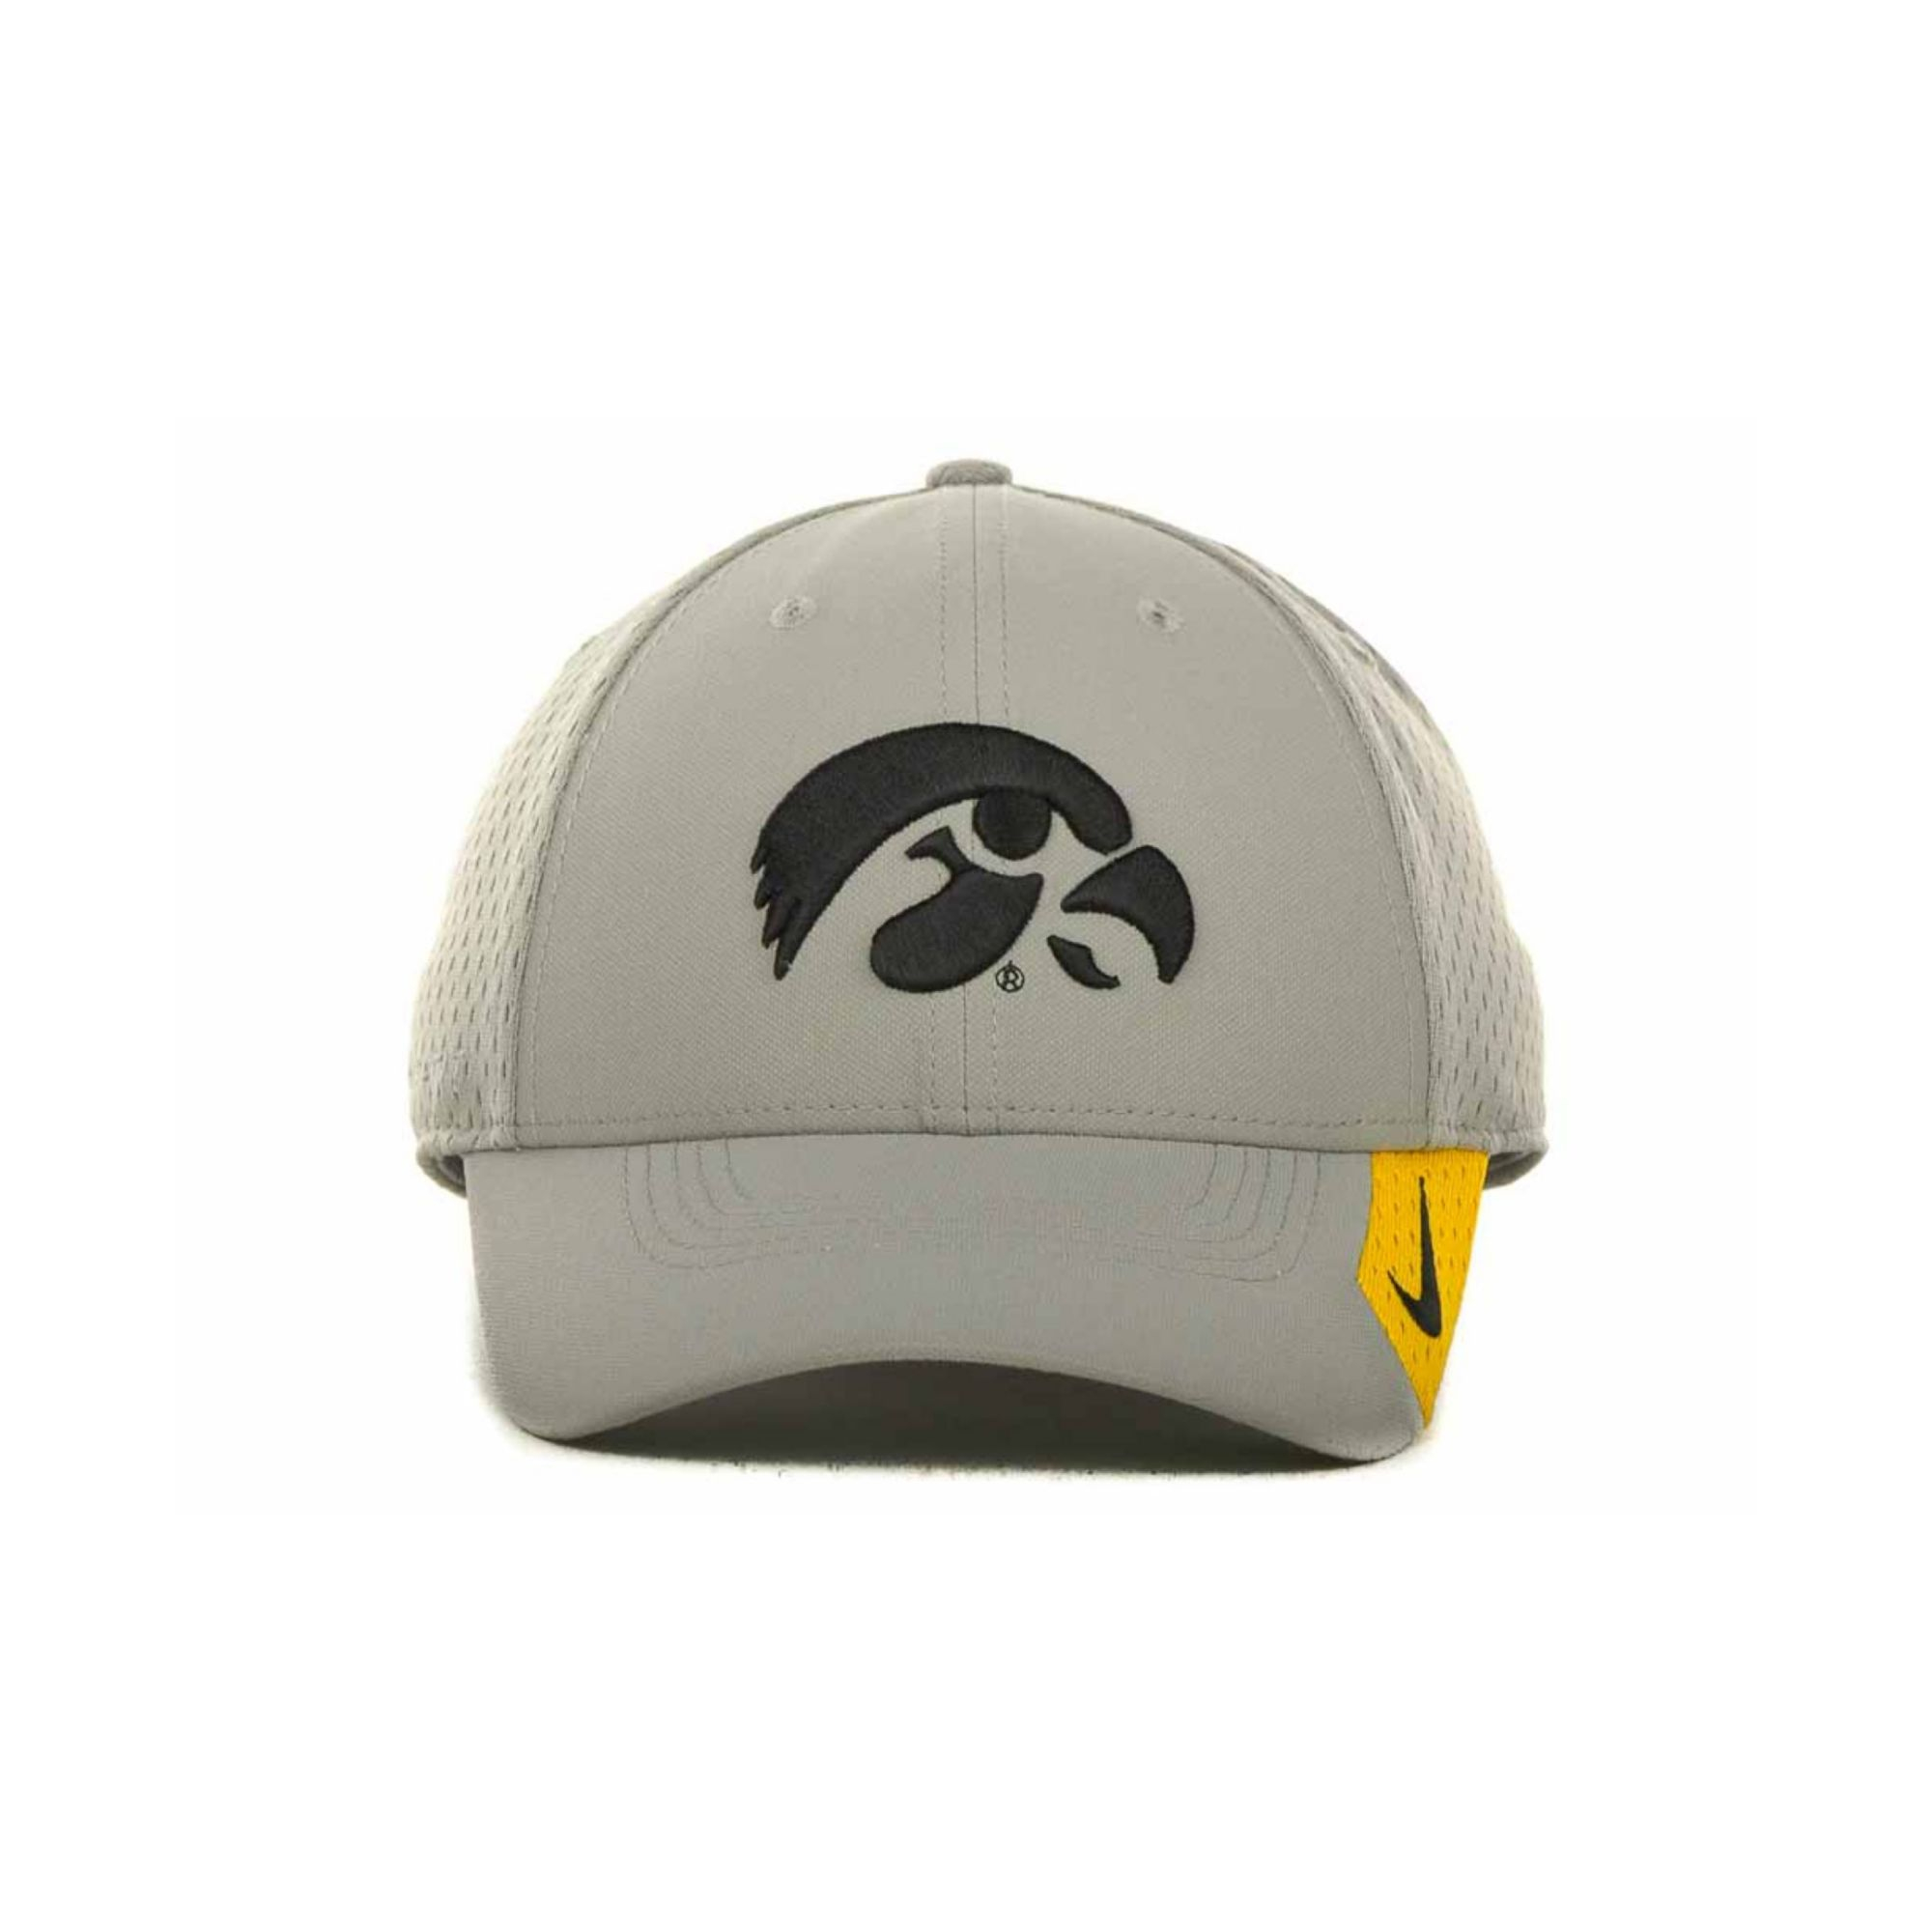 1d1d786a7d3 ireland lyst nike iowa hawkeyes mesh swooshflex cap in gray for men ba0a3  0a674